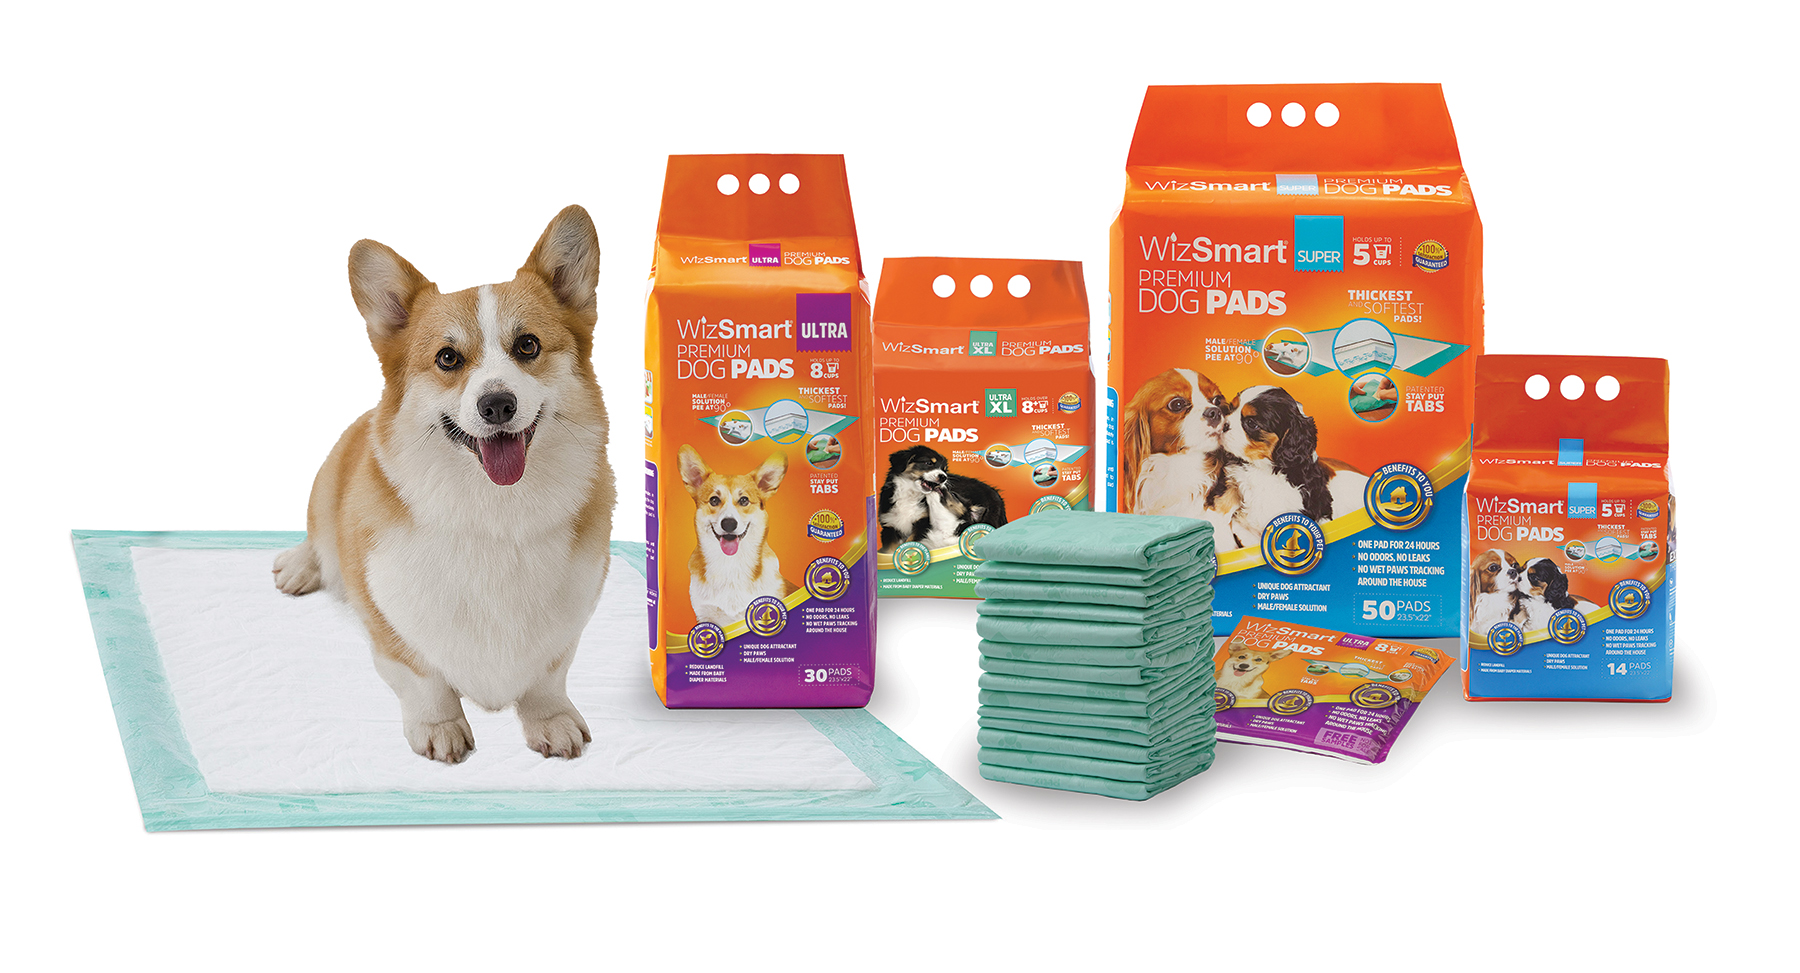 Southeast Pet partnership expands Petix's Southeast US Distribution